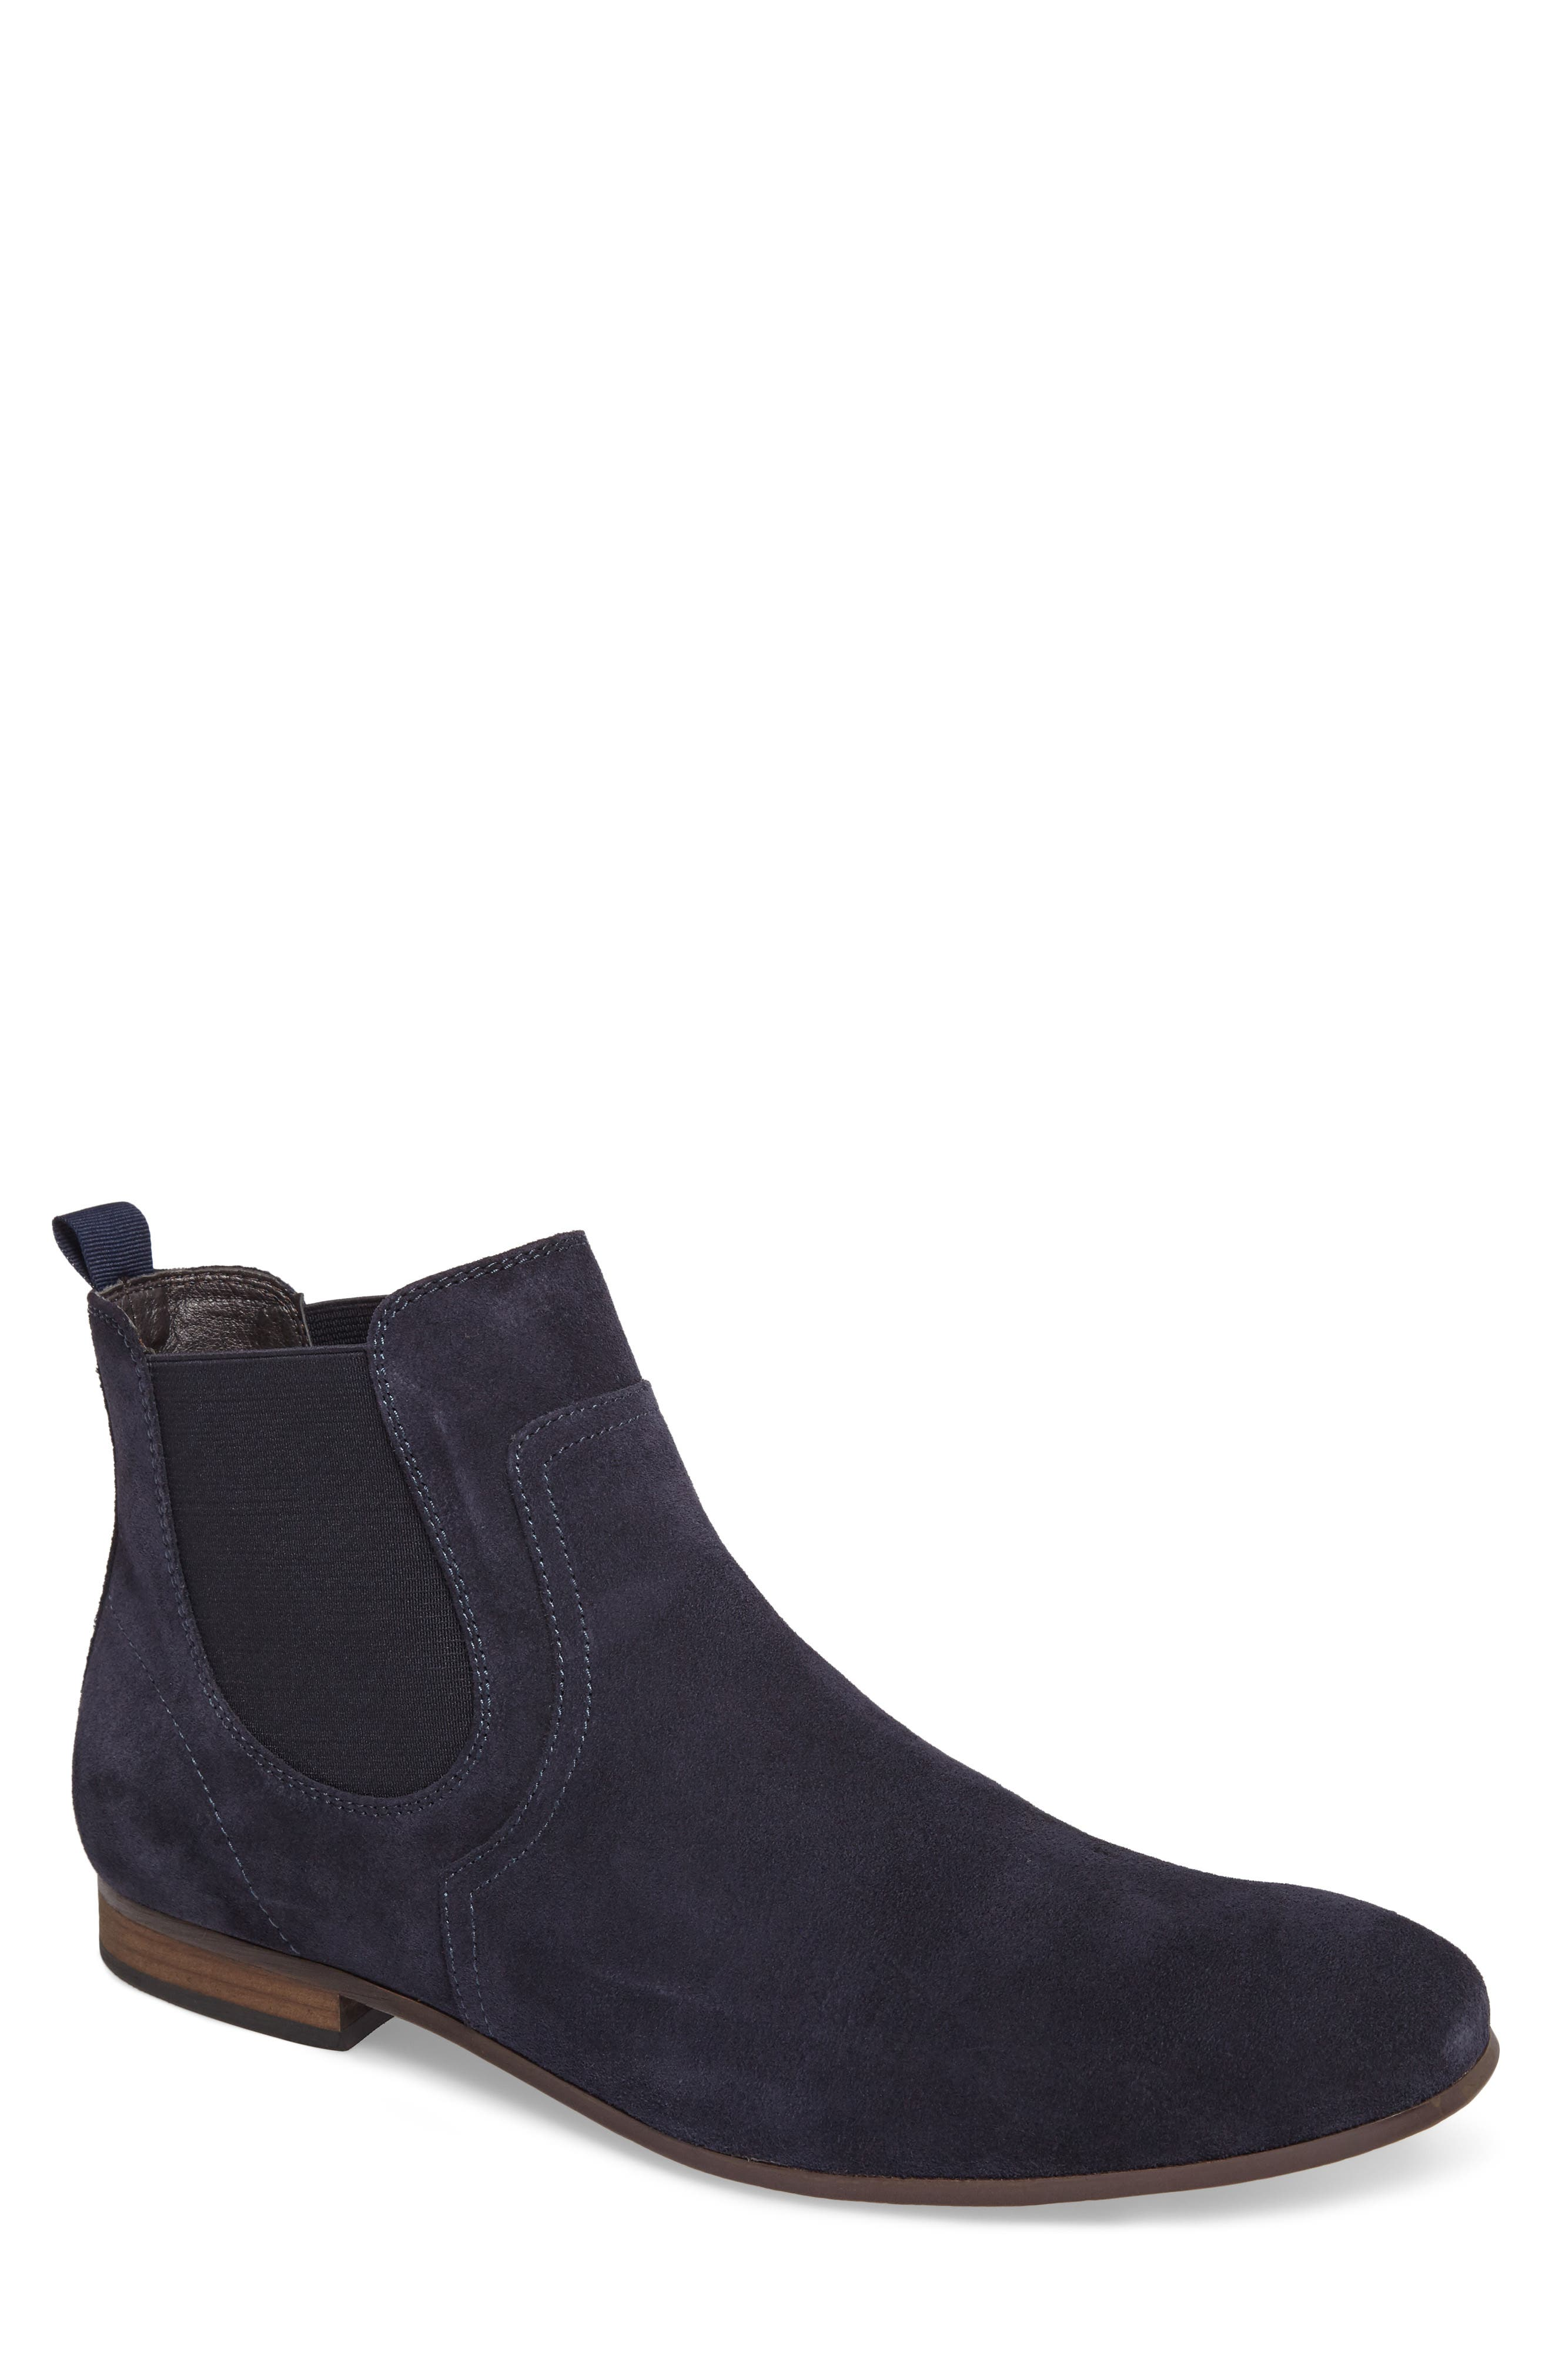 Brysen Chelsea Boot,                         Main,                         color, Blue Suede